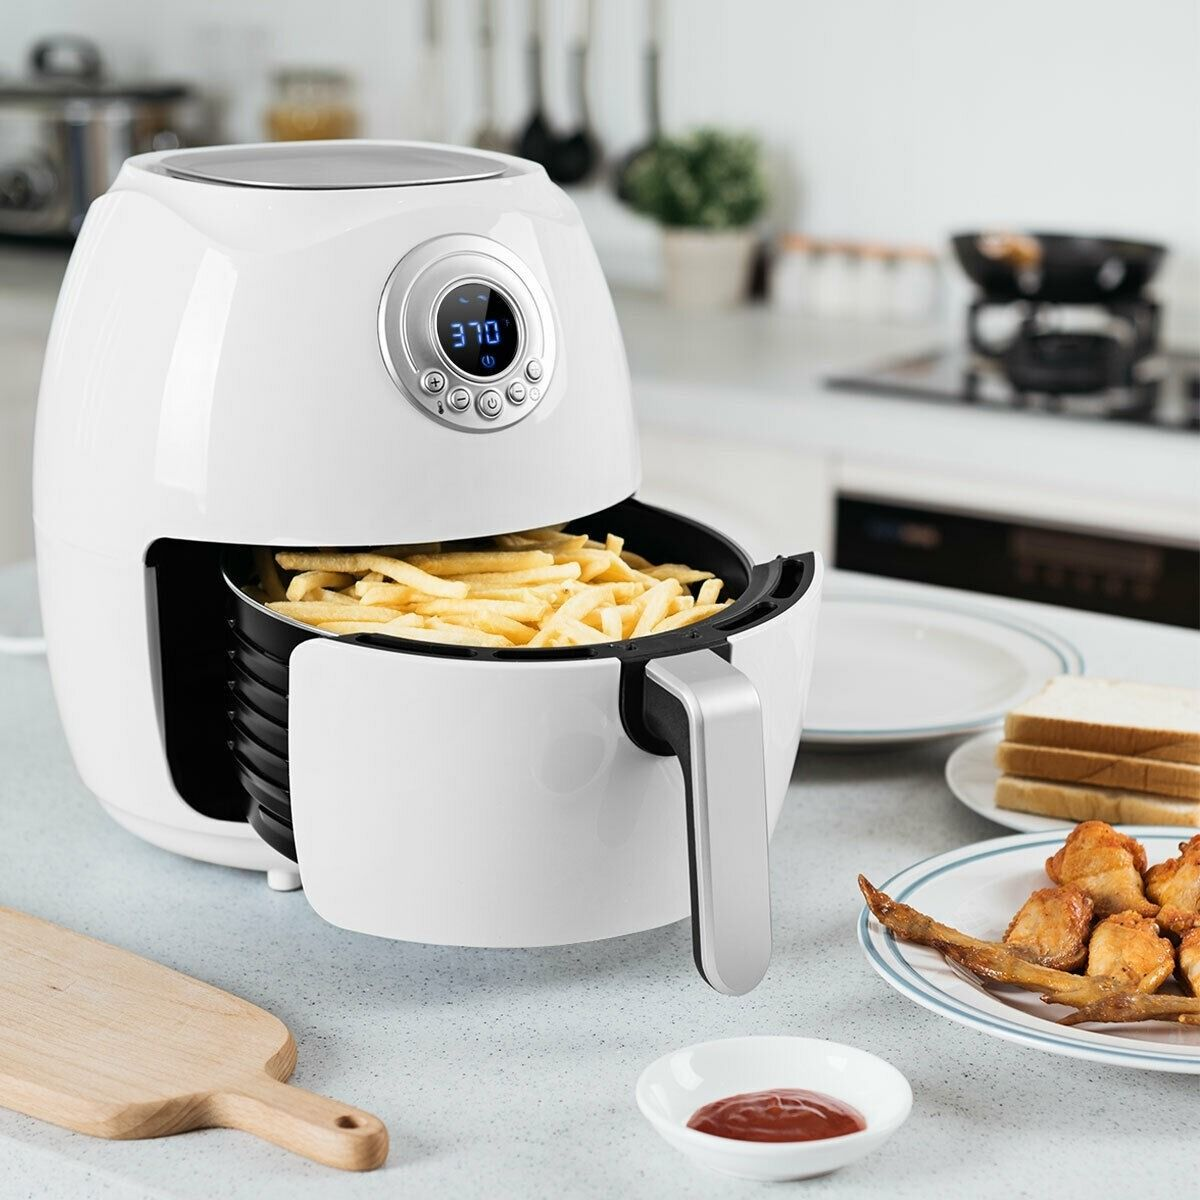 Hot Air Fryer Oilless with Lcd Screen Timer & Temperature